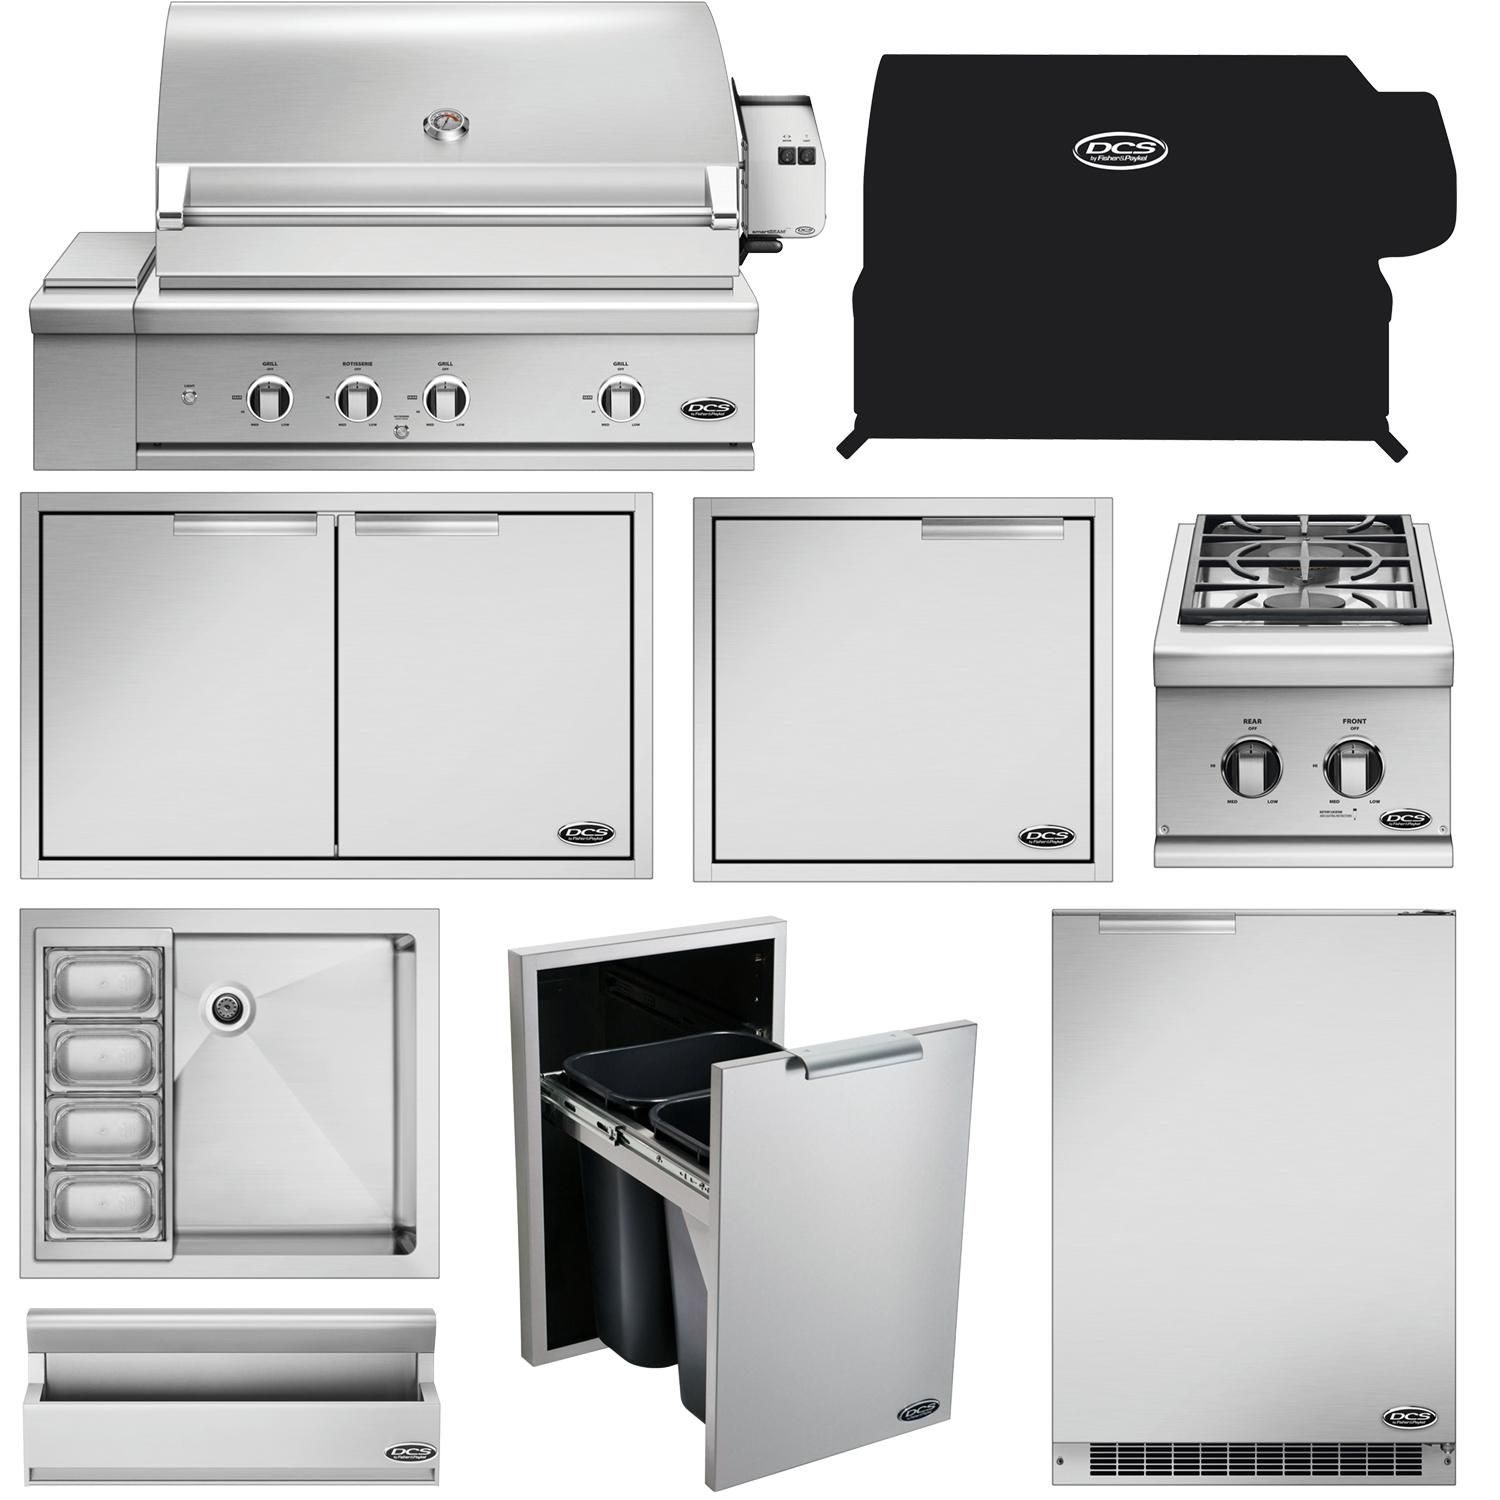 This Dcs Outdoor Kitchen Package Includes Everything You Need For A Professional Style Outdoo In 2020 With Images Outdoor Kitchen Outdoor Kitchen Appliances Outdoor Kitchen Design